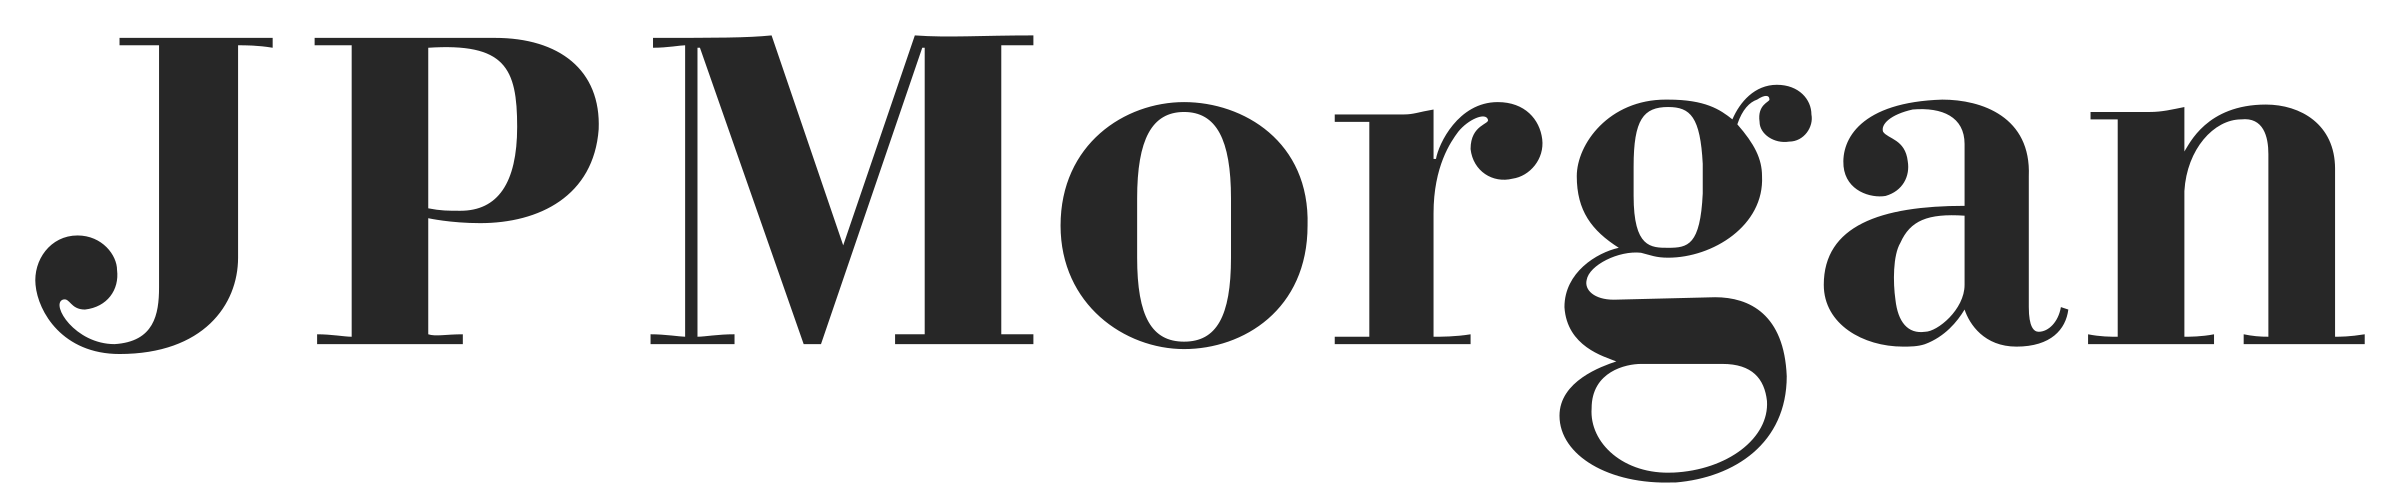 jpmorgan-logo-png-transparent